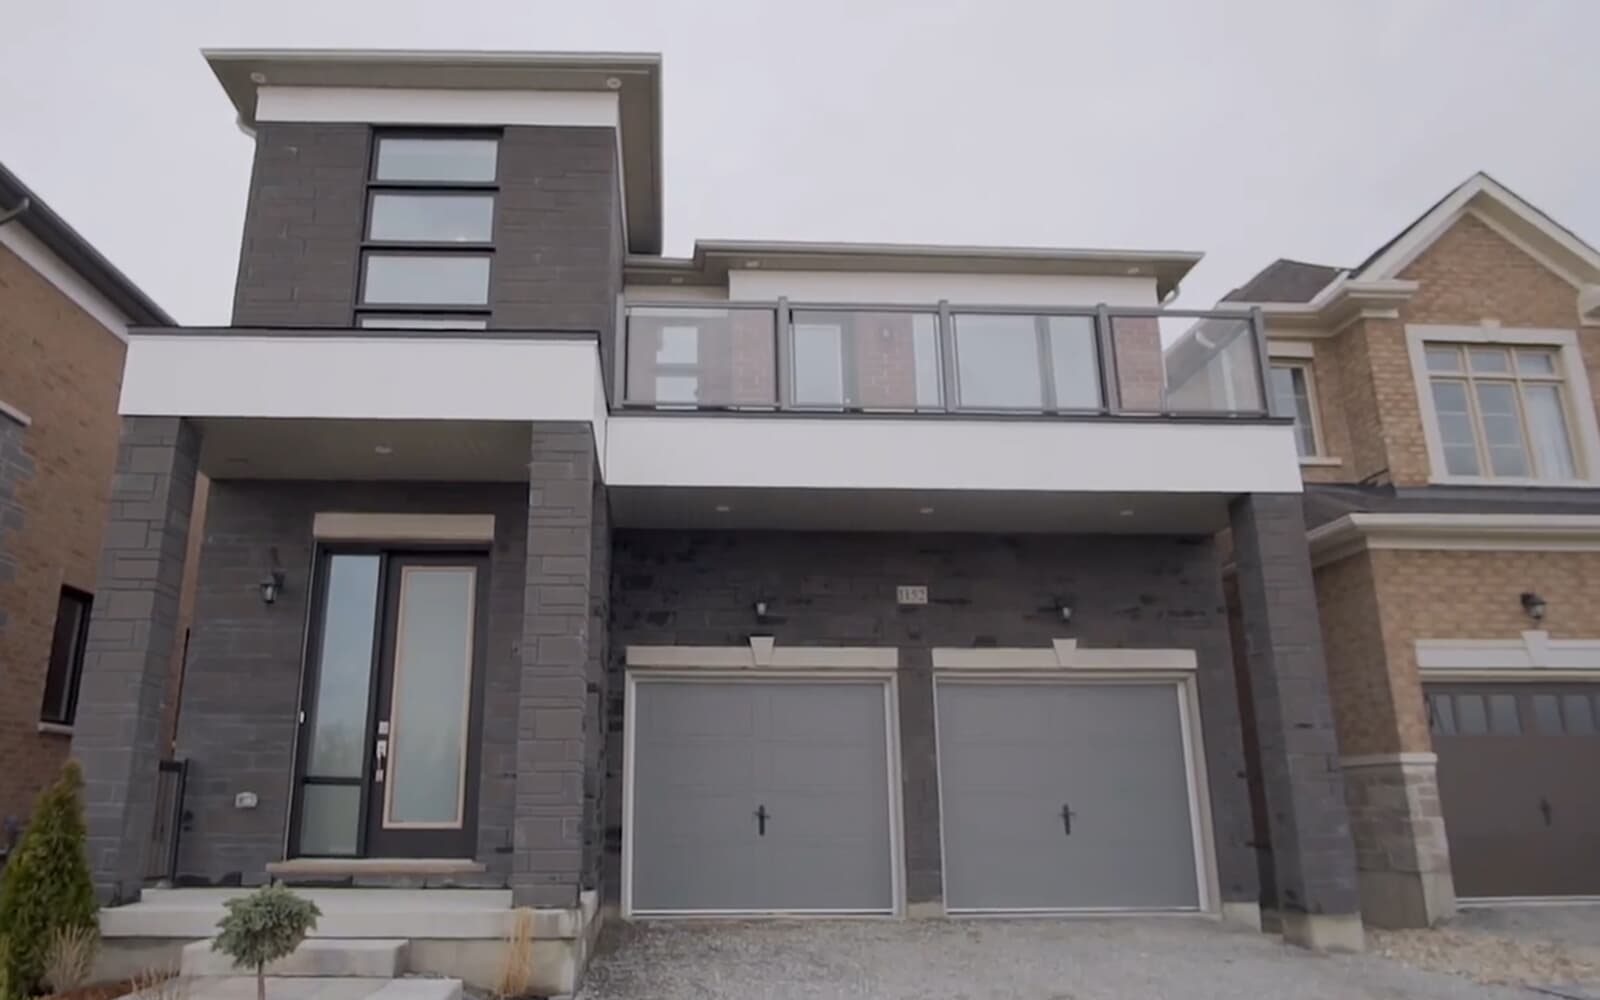 Dunbarton C Model Home | Dunbarton at New Seaton in Pickering | Pickering, ON | Brookfield Residential